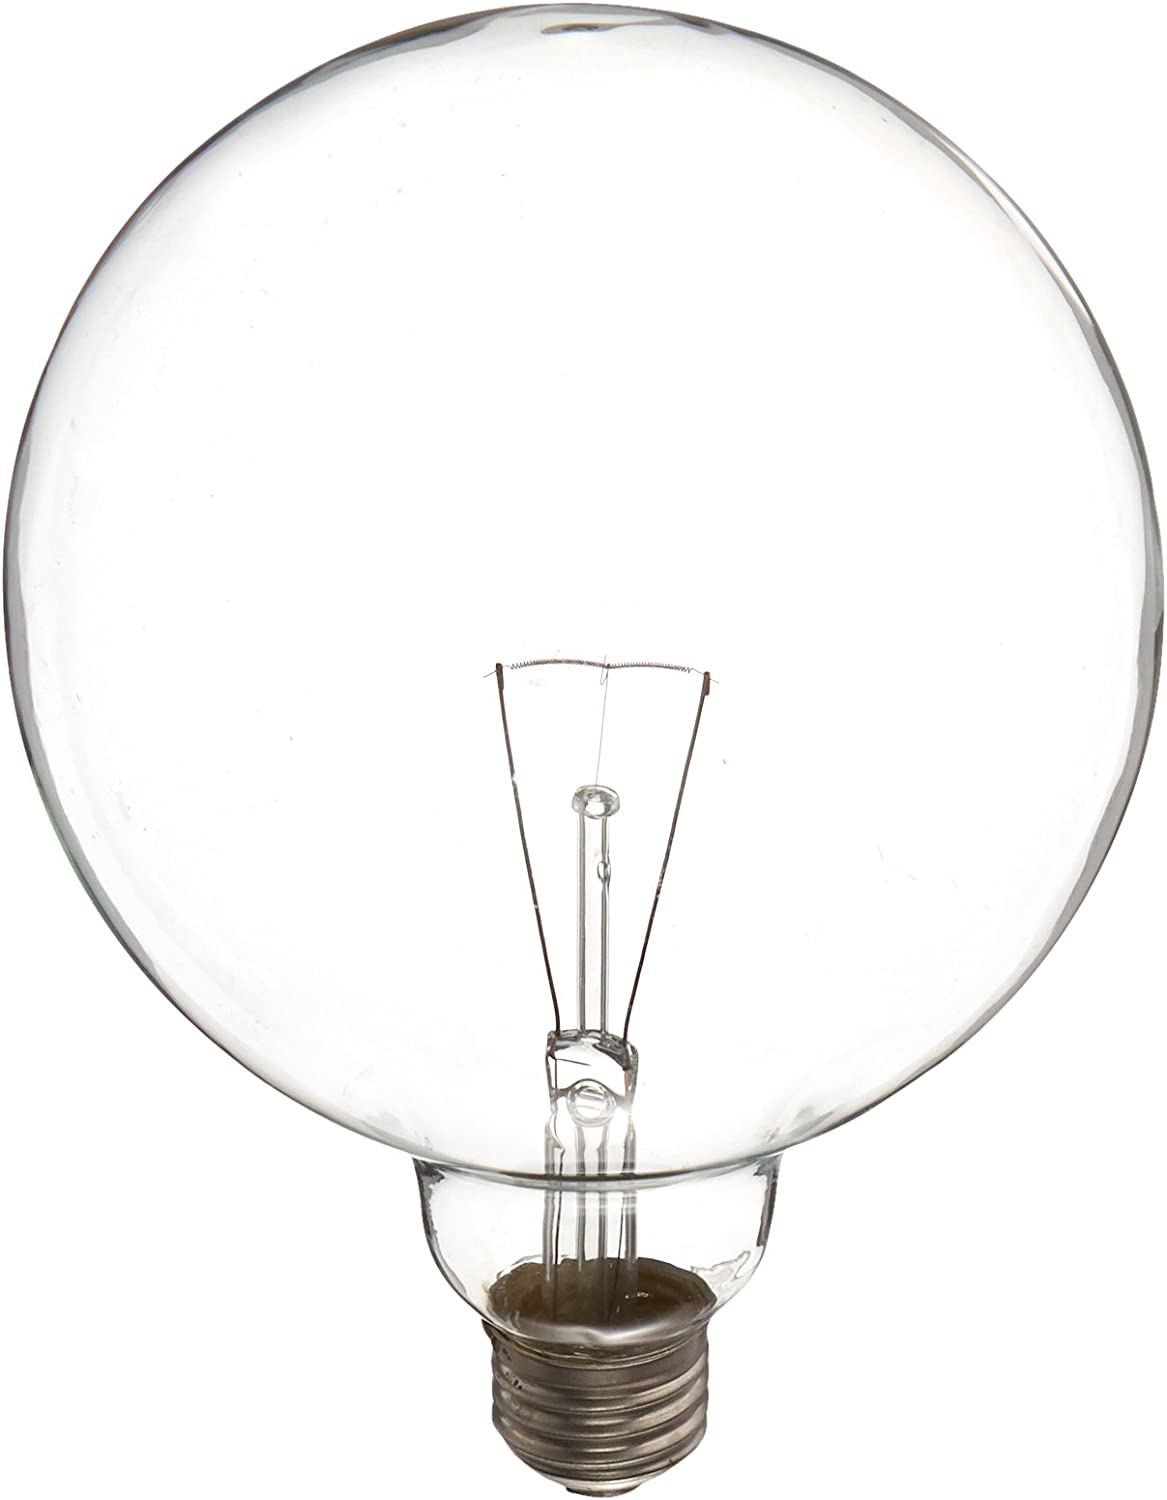 GE Lighting 14187 60-Watt Crystal Clear G40 Vanity Globe Light Bulb, 1-Pack